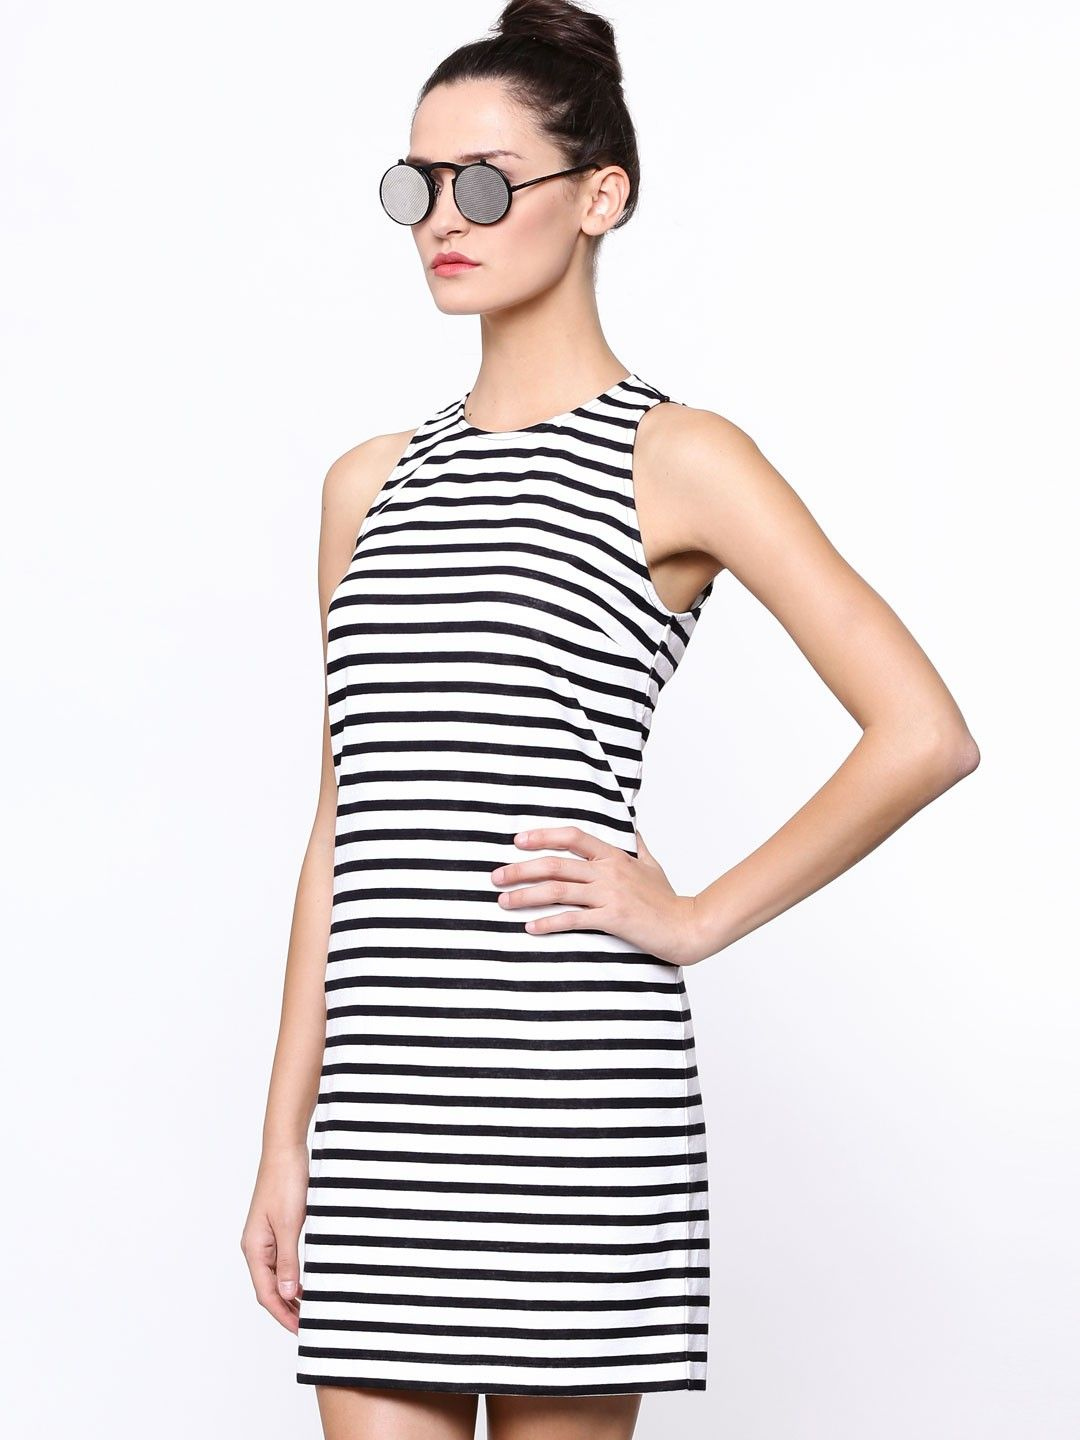 a6e4768c59d GAS Monochrome Striped Dress - Buy Women s Tunic Dresses online in India